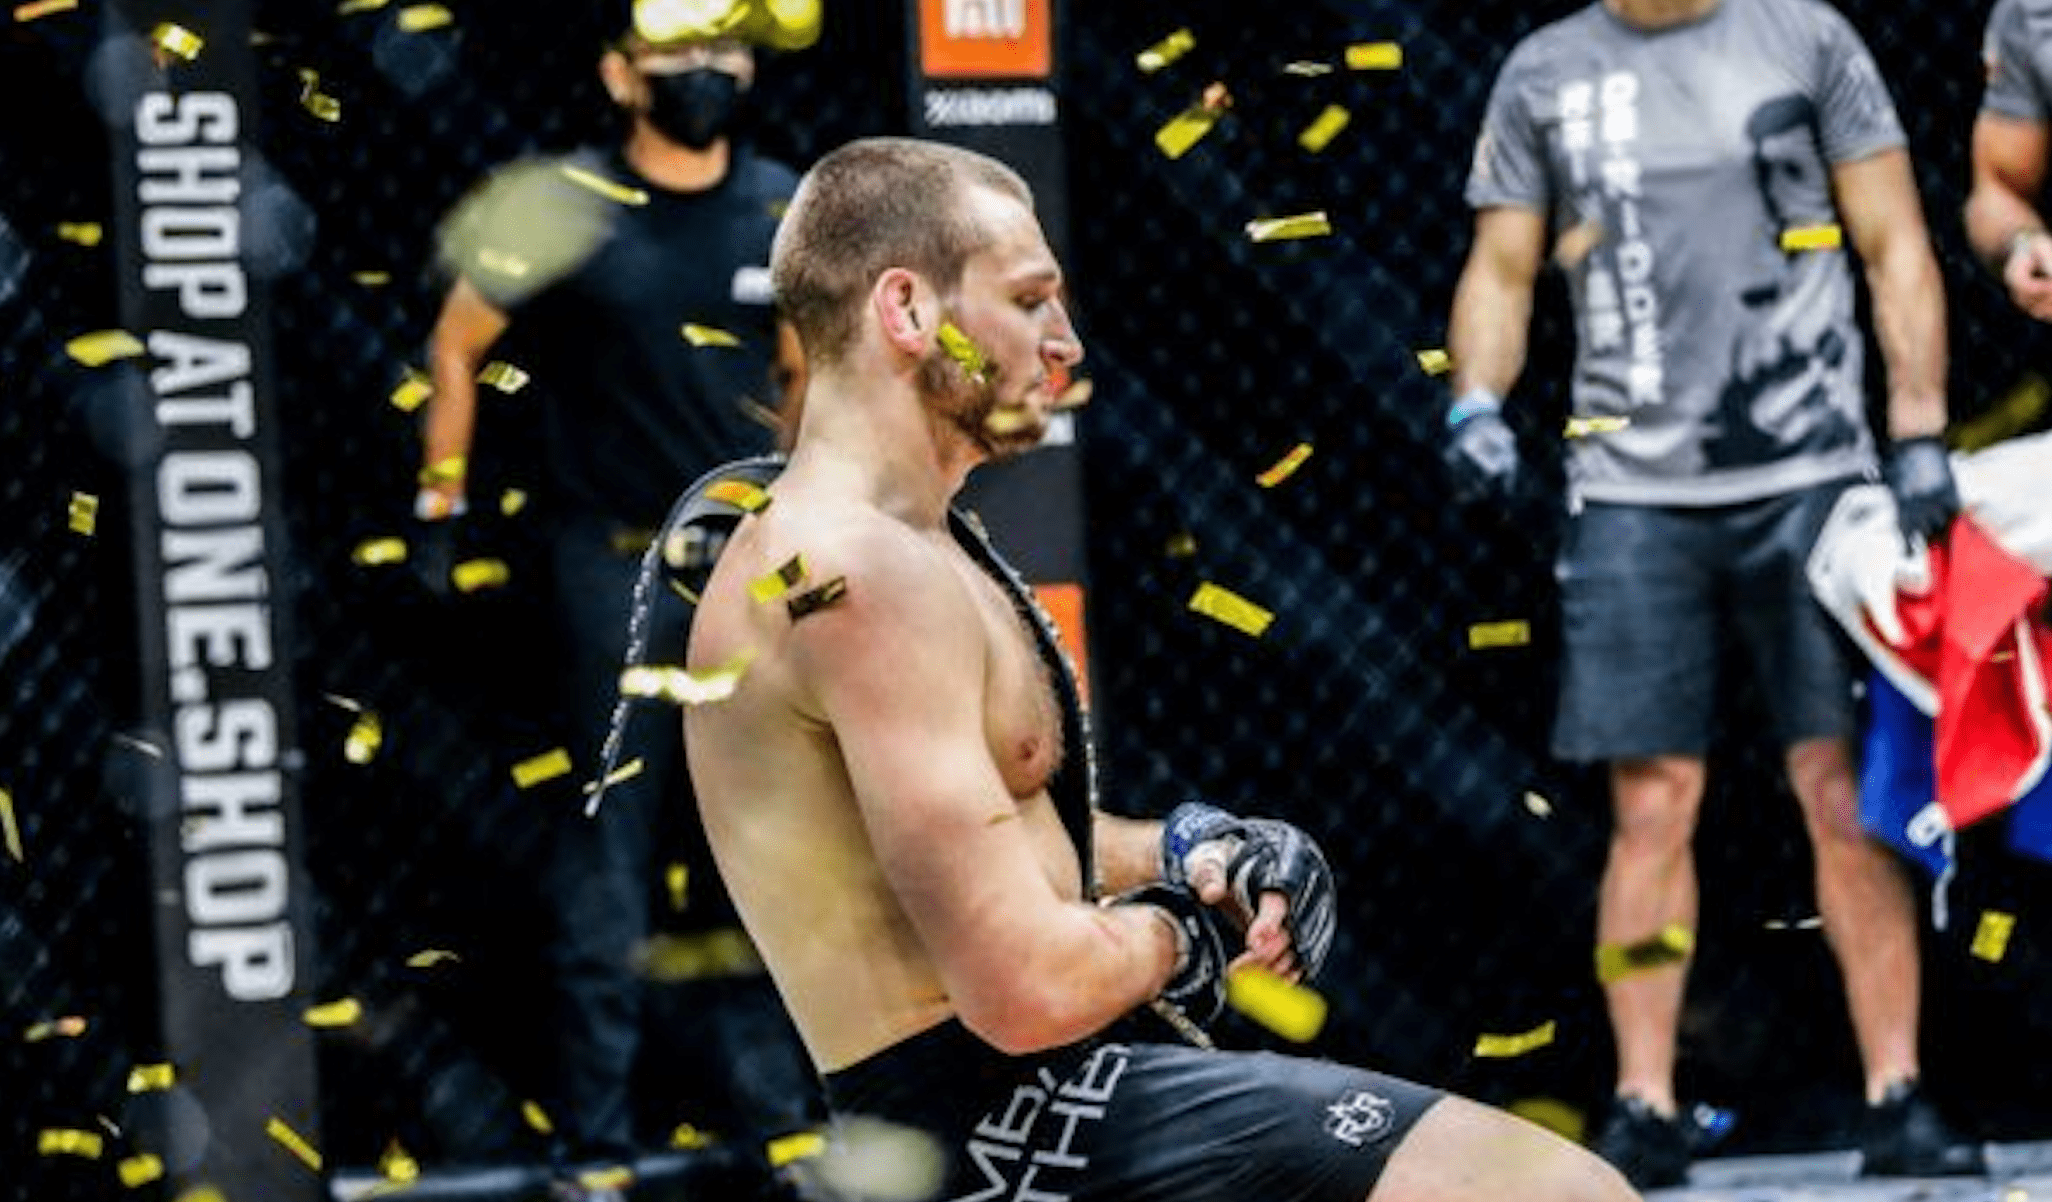 ONE Championship: Reinier De Ridder Shares Plans For 2021